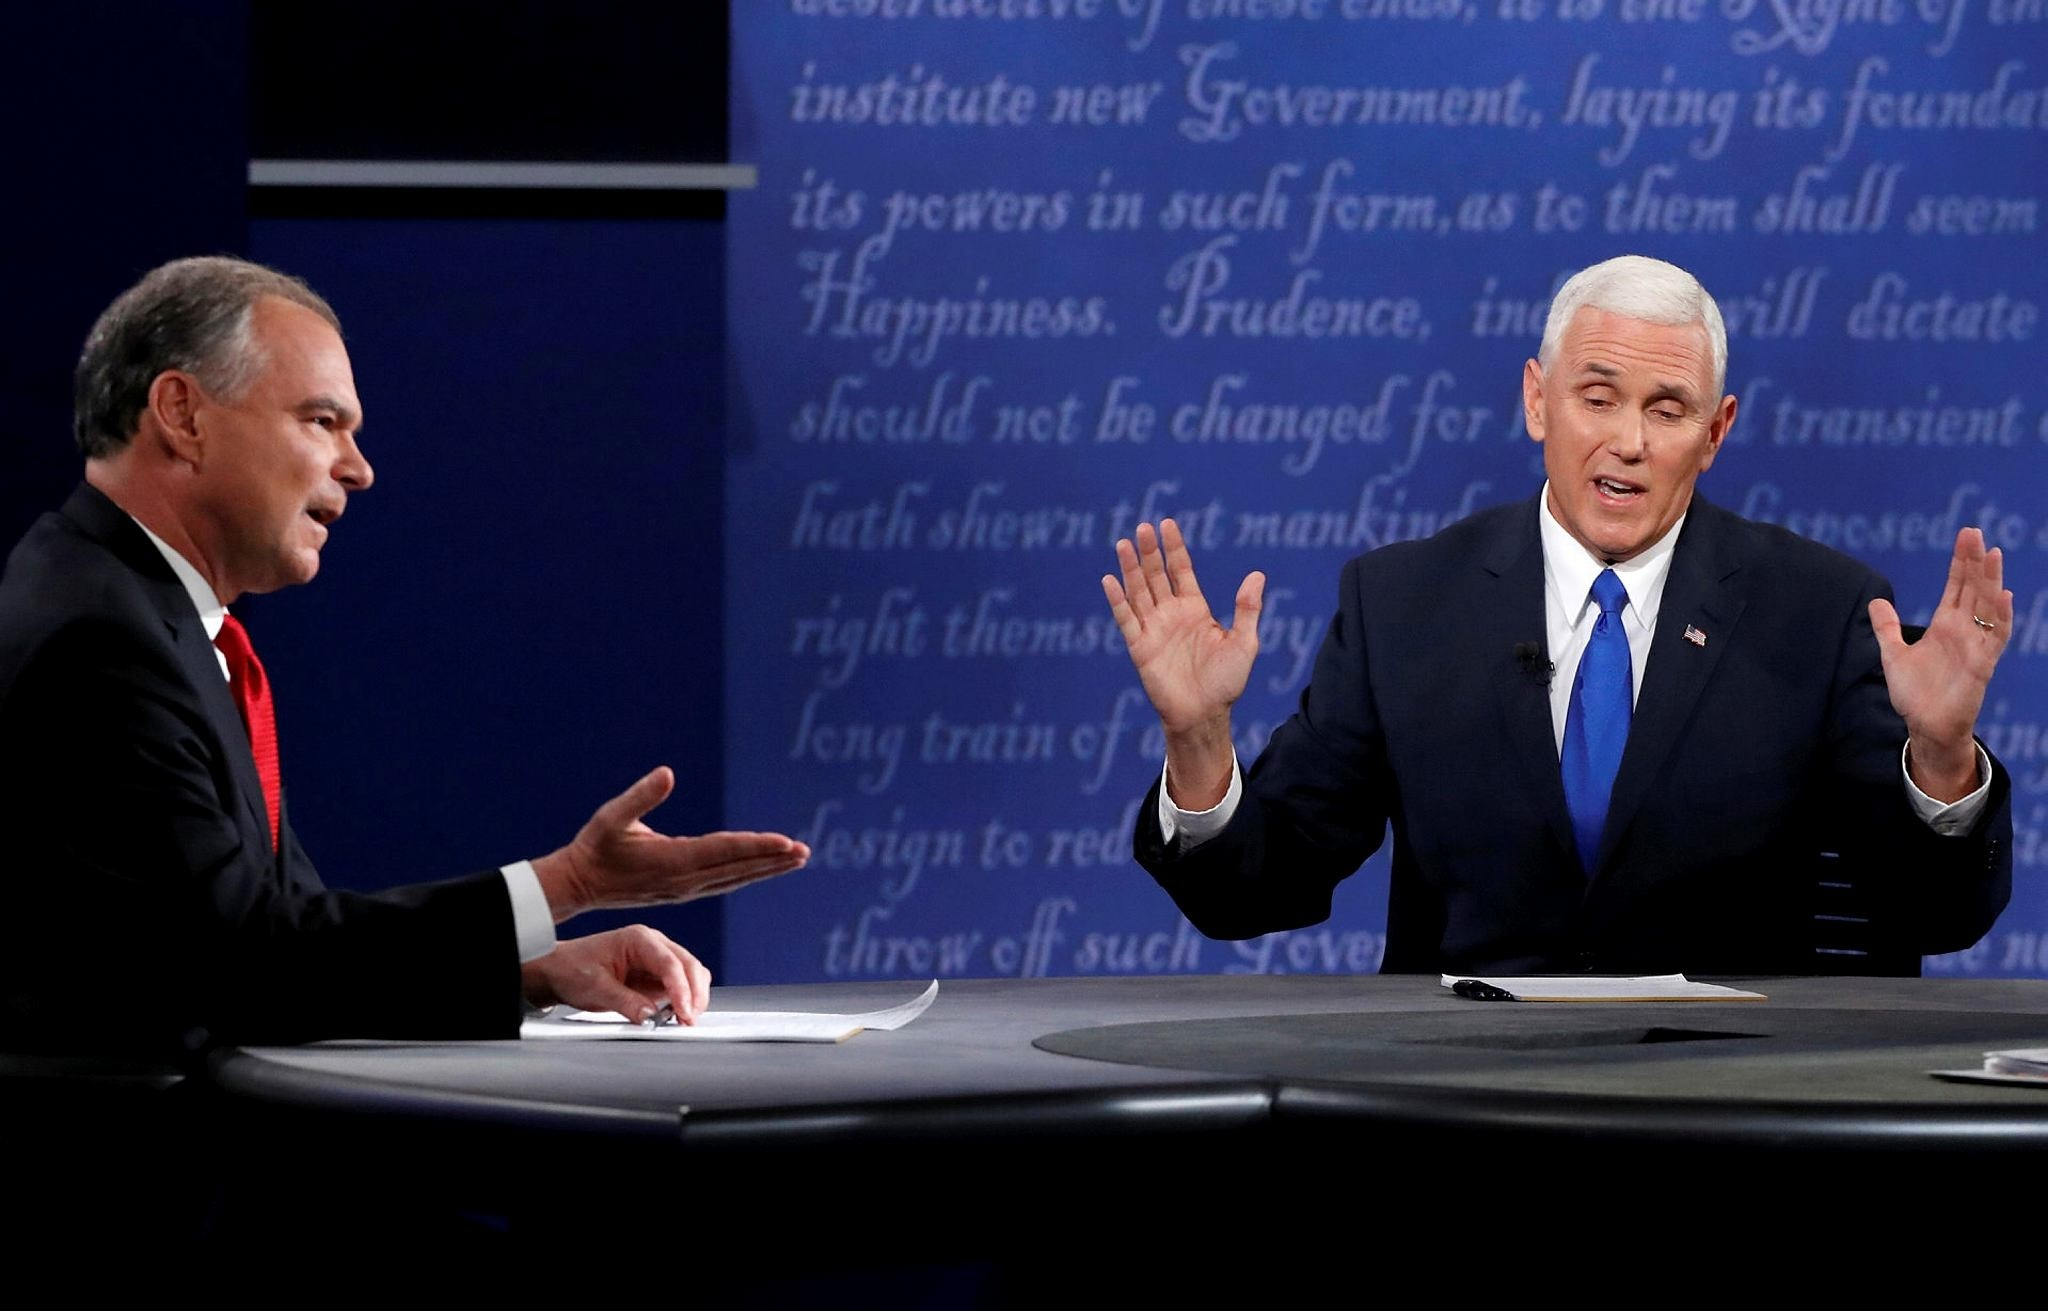 Tim Kaine (L) and Republican Mike Pence discuss an issue during their vice presidential debate at Longwood University in Farmville, Virginia, U.S. on October 4, 2016. (REUTERS Photo)